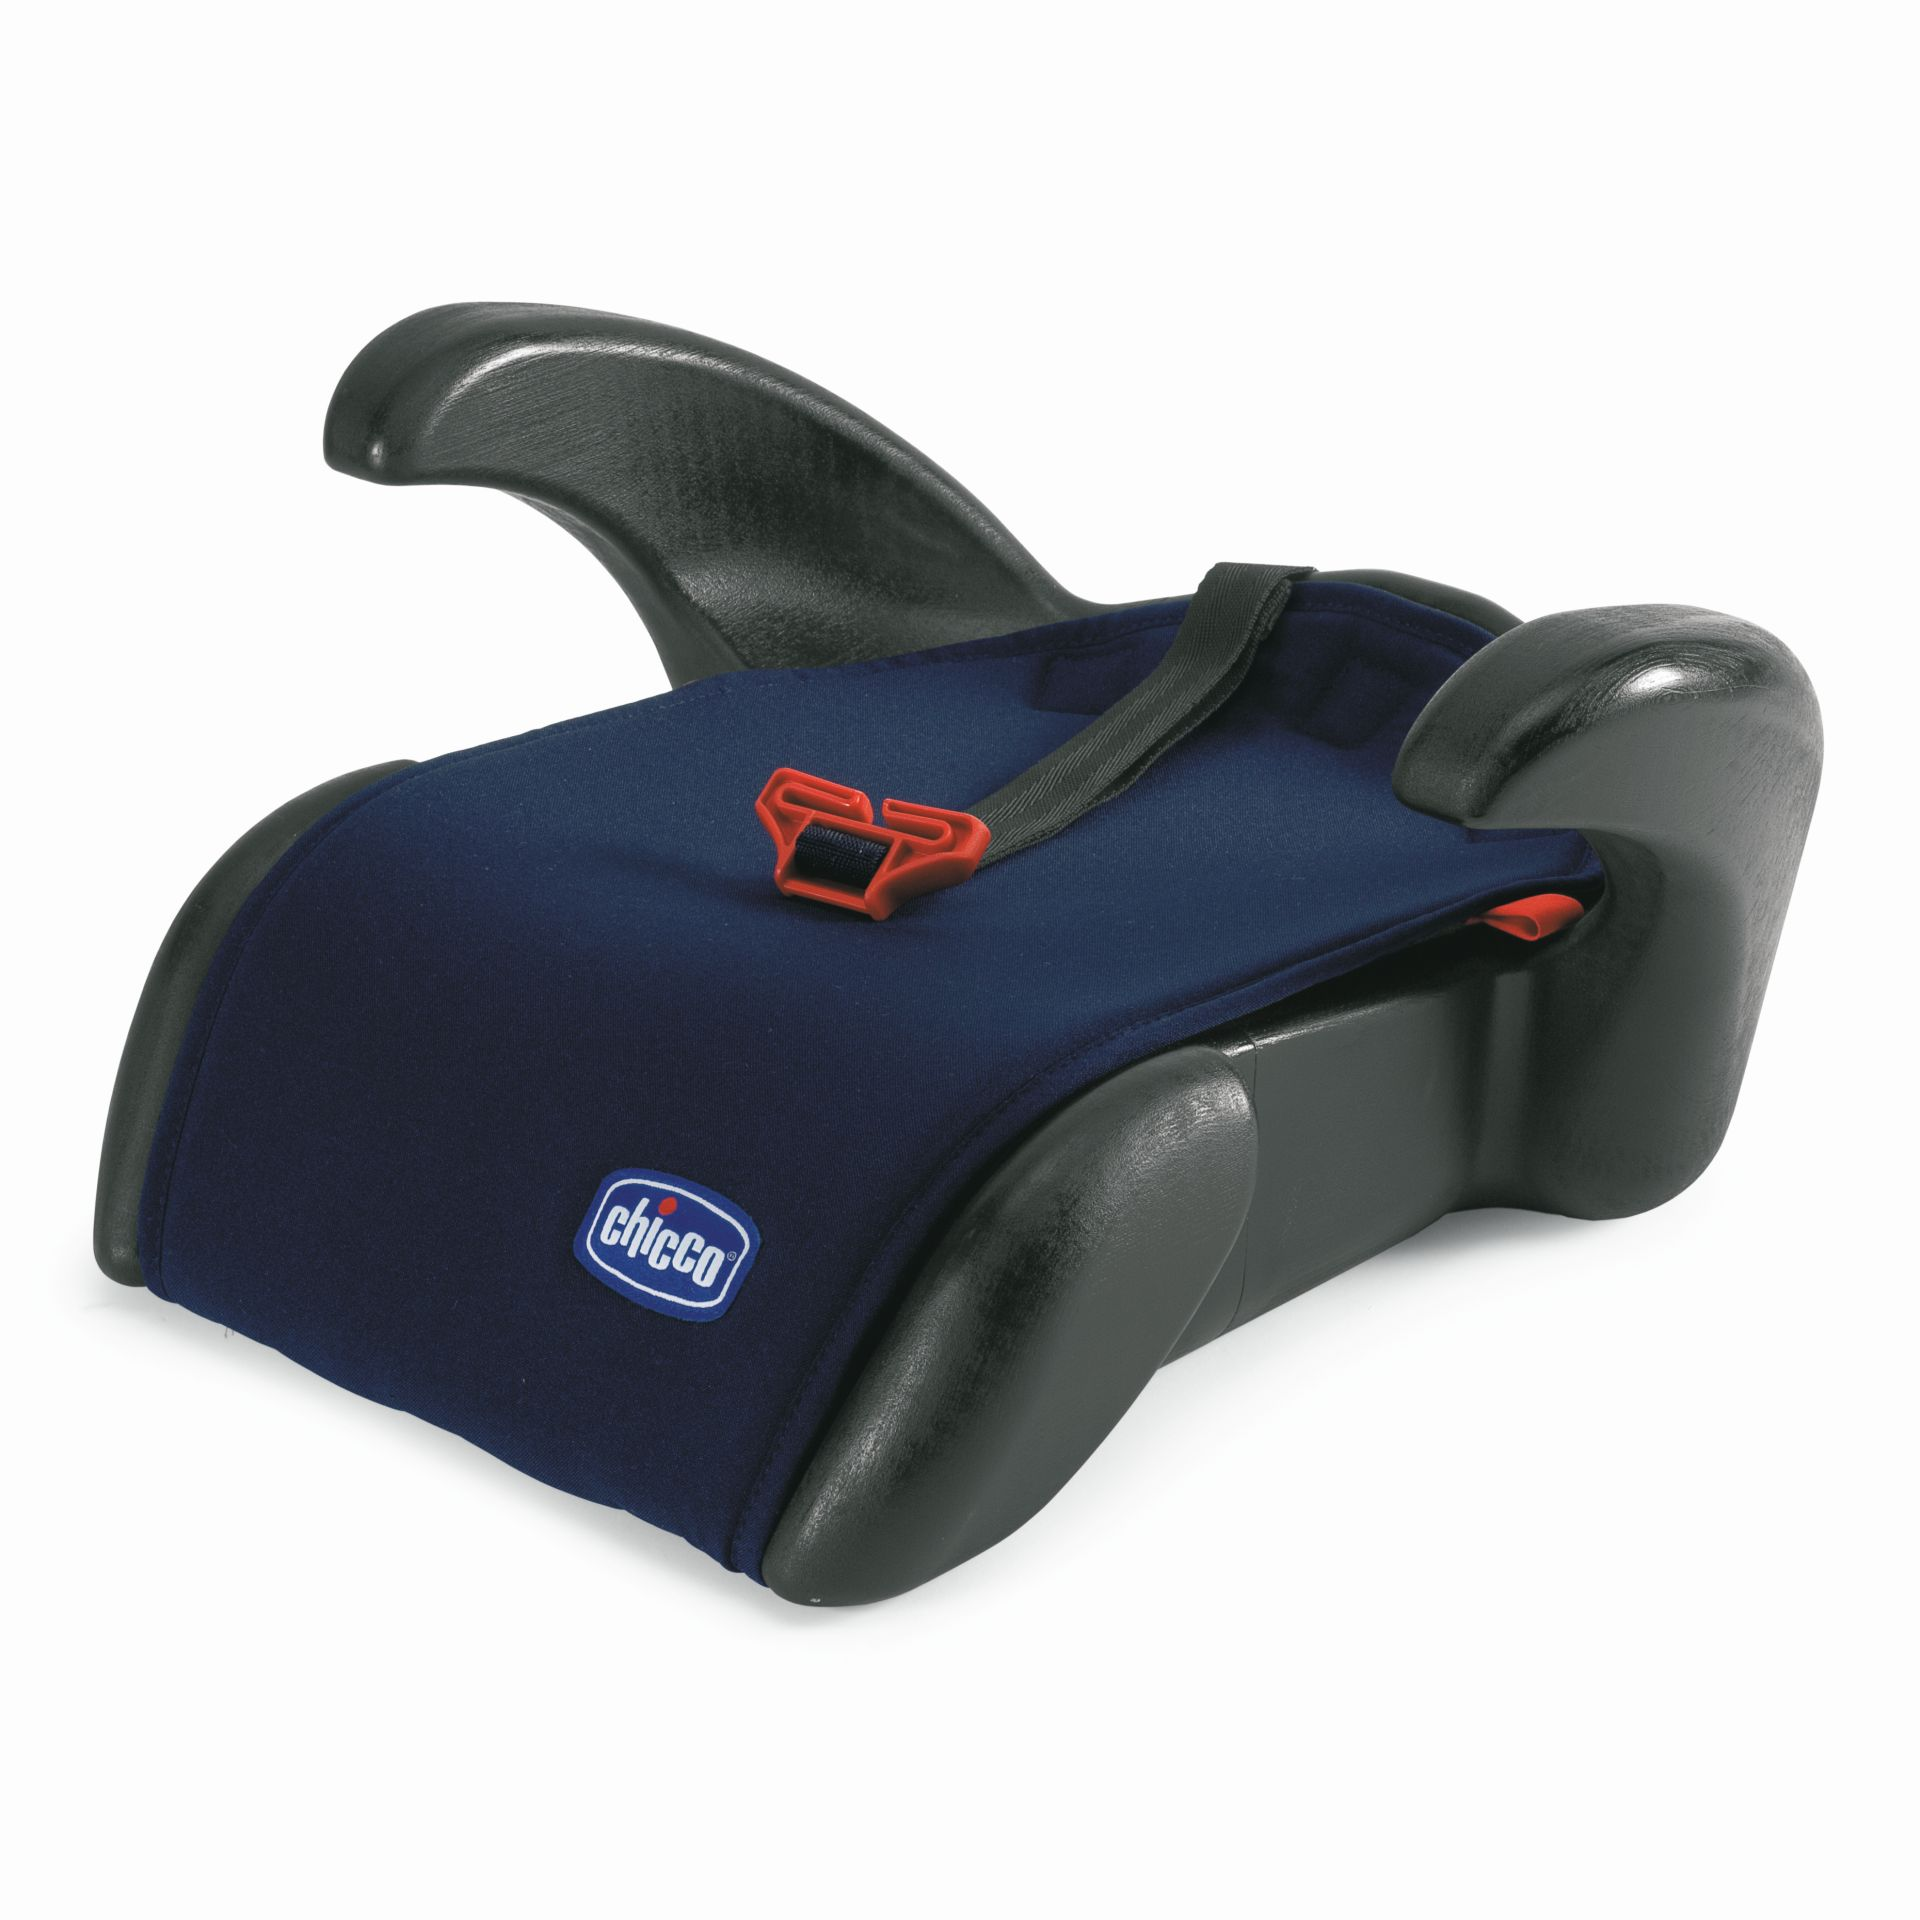 Chicco Car Seats >> Chicco Booster Seat Quasar Plus 2018 Astral - Buy at kidsroom | Car Seats